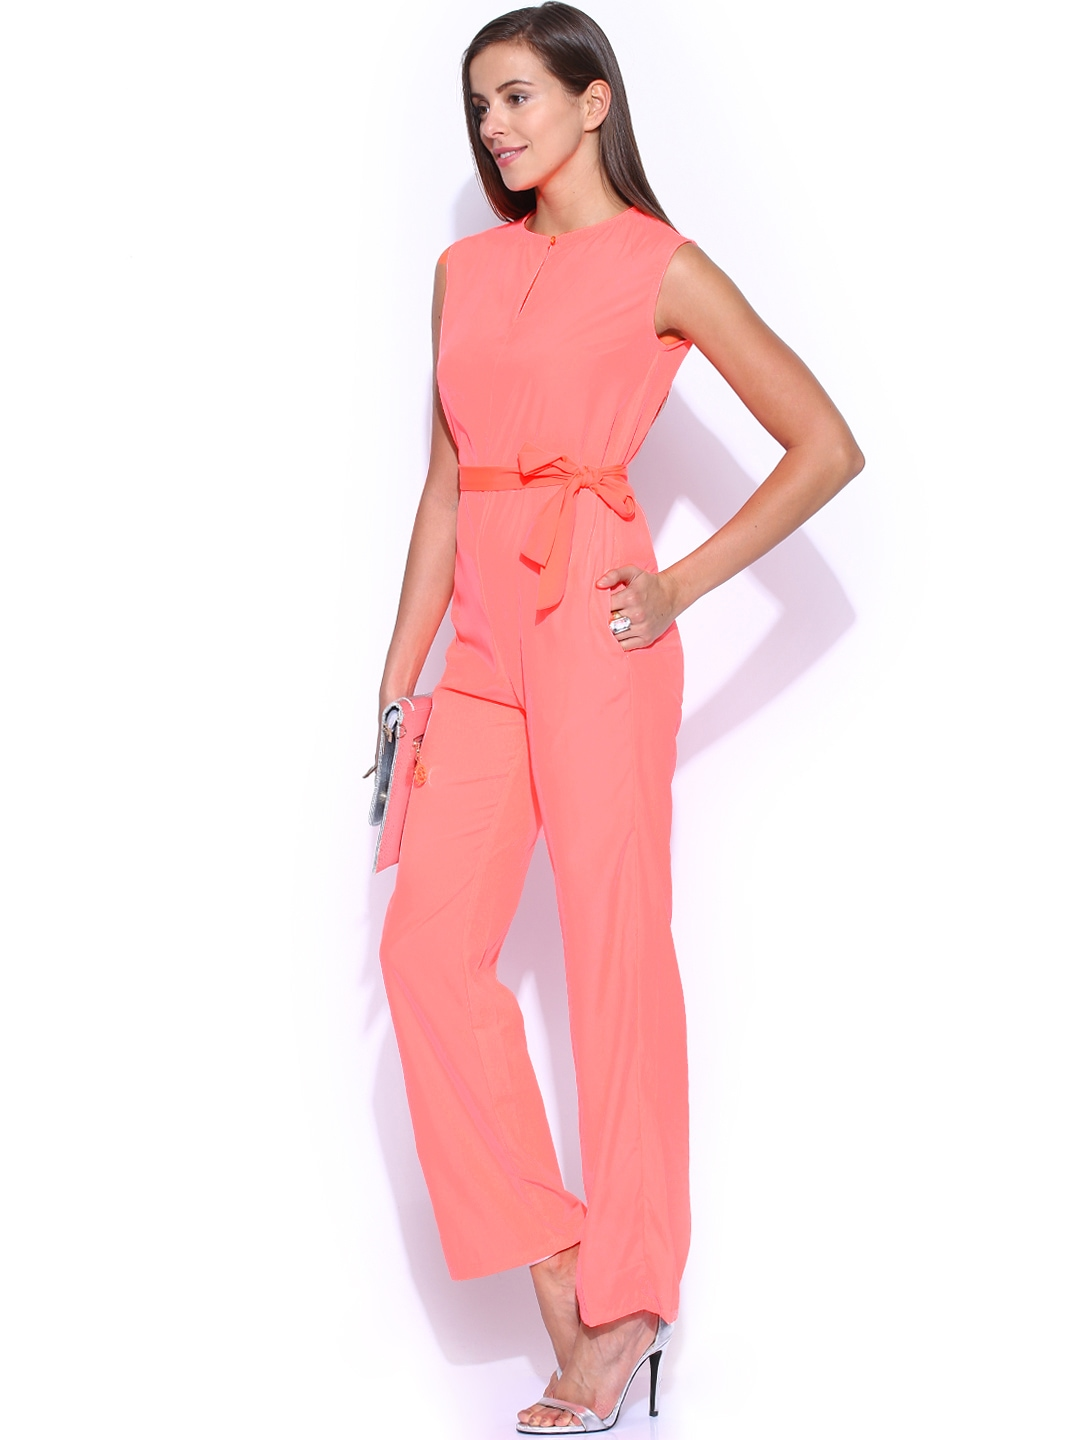 Baby pink, bright pink and coral, whatever the shade of pink we want it in our wardrobe and that's 'cause we're obsessing over it for the new season. Our latest drop of pink jumpsuits have just landed and no matter whether you're dressing for a night out-out with friends or planning a chilled weekend in, our pink jumpsuits have got you.